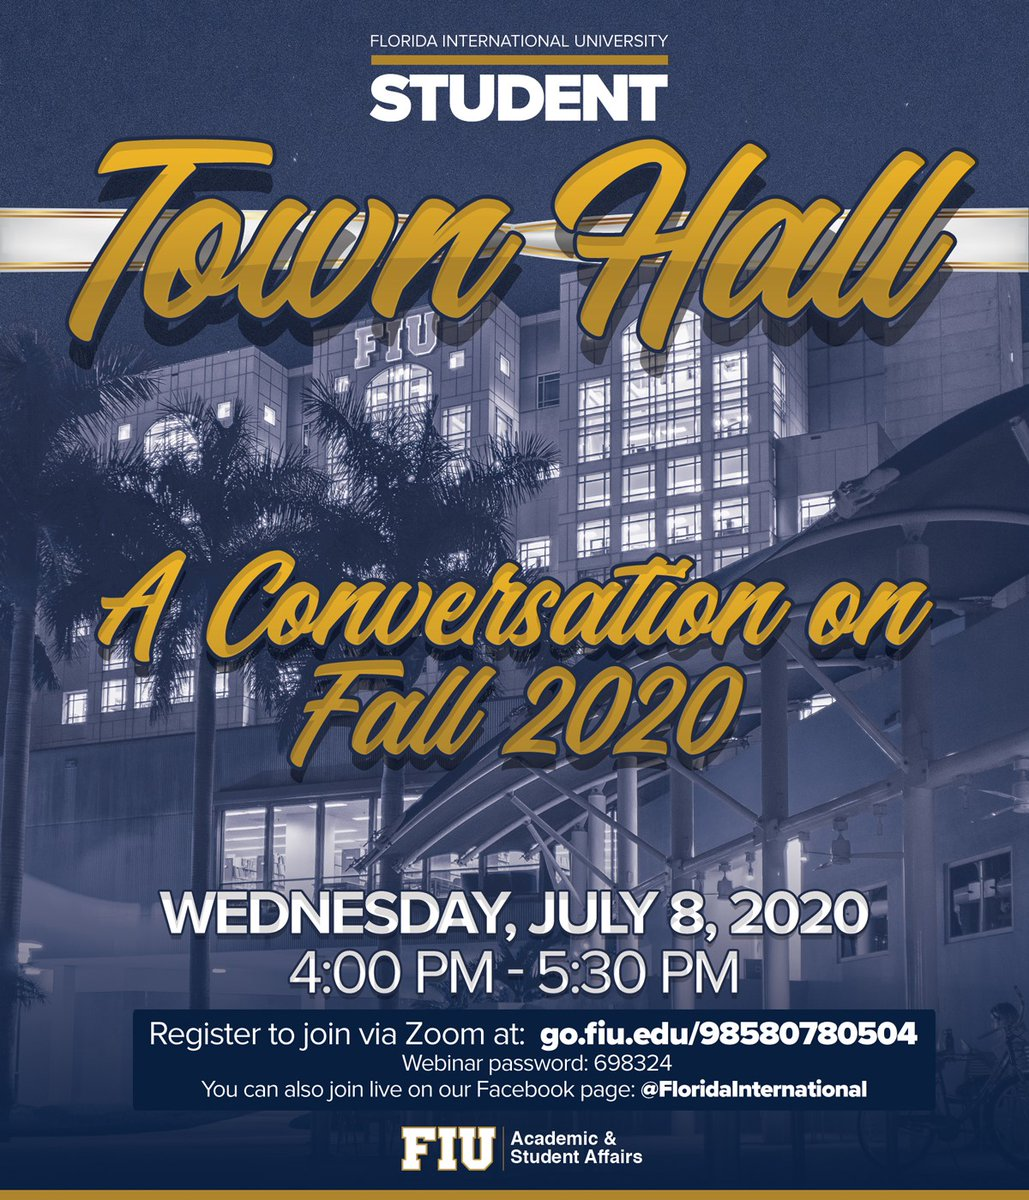 Join us today at 4 pm for the Student Town Hall. We will discuss Fall #FIUReopening and will also be taking your questions. Two ways to join live. Via Zoom: go.fiu.edu/98580780504 Via FB Live: facebook.com/floridainterna…